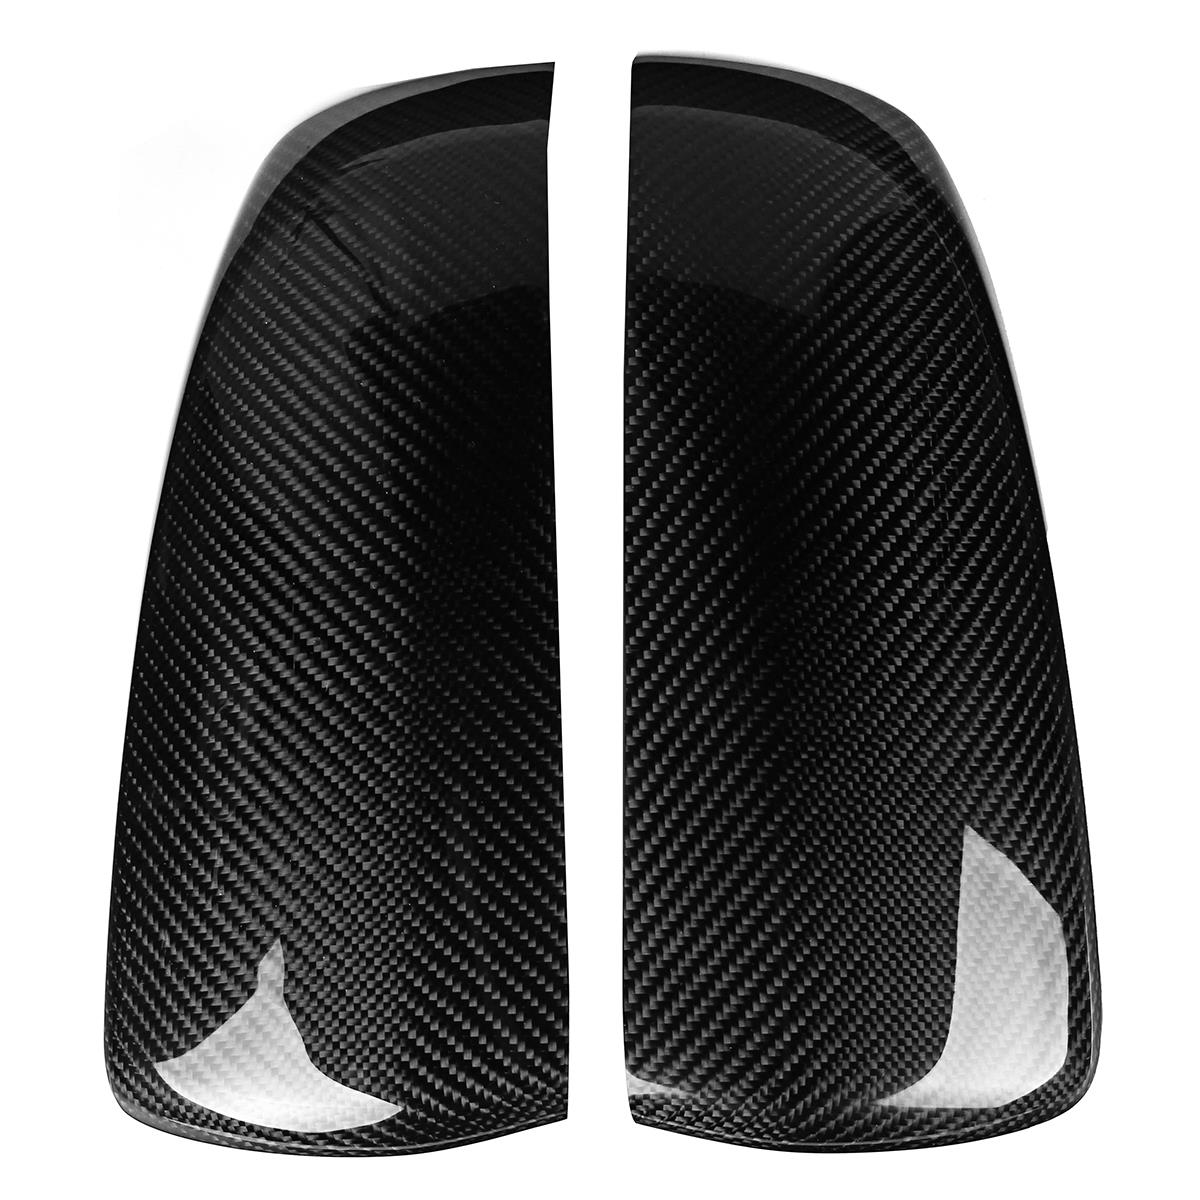 2Pcs Carbon Fiber Rear Door Side Wing Mirror Black Covers Cover Caps For BMW X5 X6 E70 E71 Exterior Parts Replacement direct replacement carbon fiber wing mirror covers for bmw x5 f15 x6 f16 facelift auto side mirror caps car styling